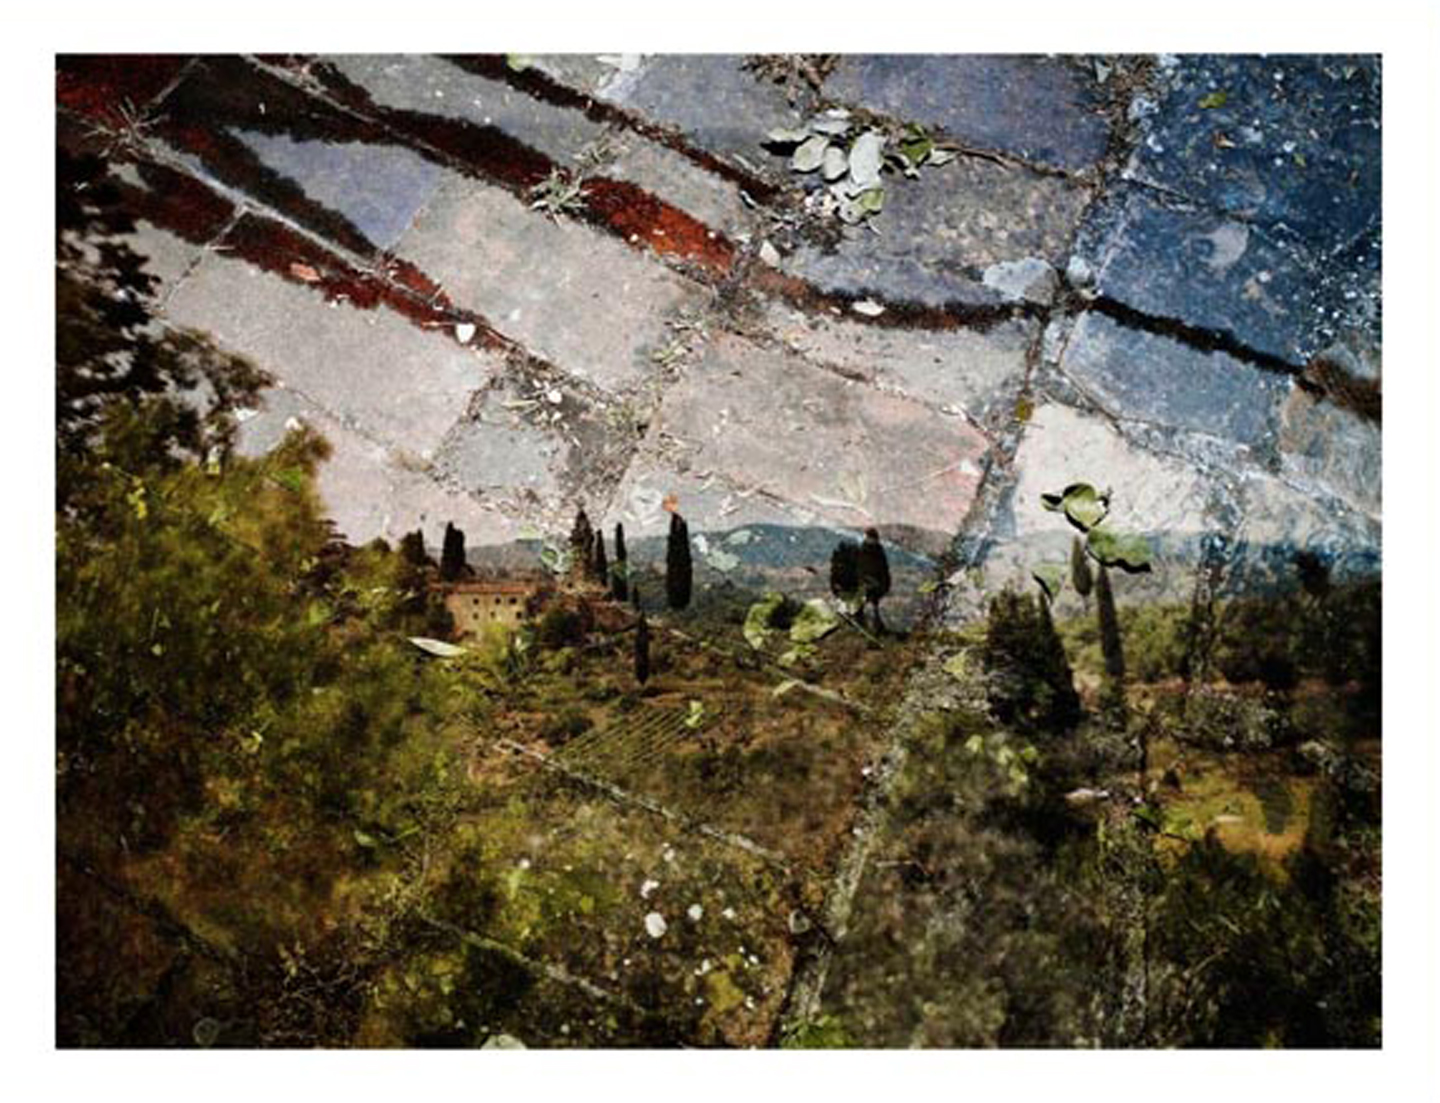 NZ Library #4: Abelardo Morell: Tent Camera, Limited Edition (NZ Library - Set Four) [SIGNED]